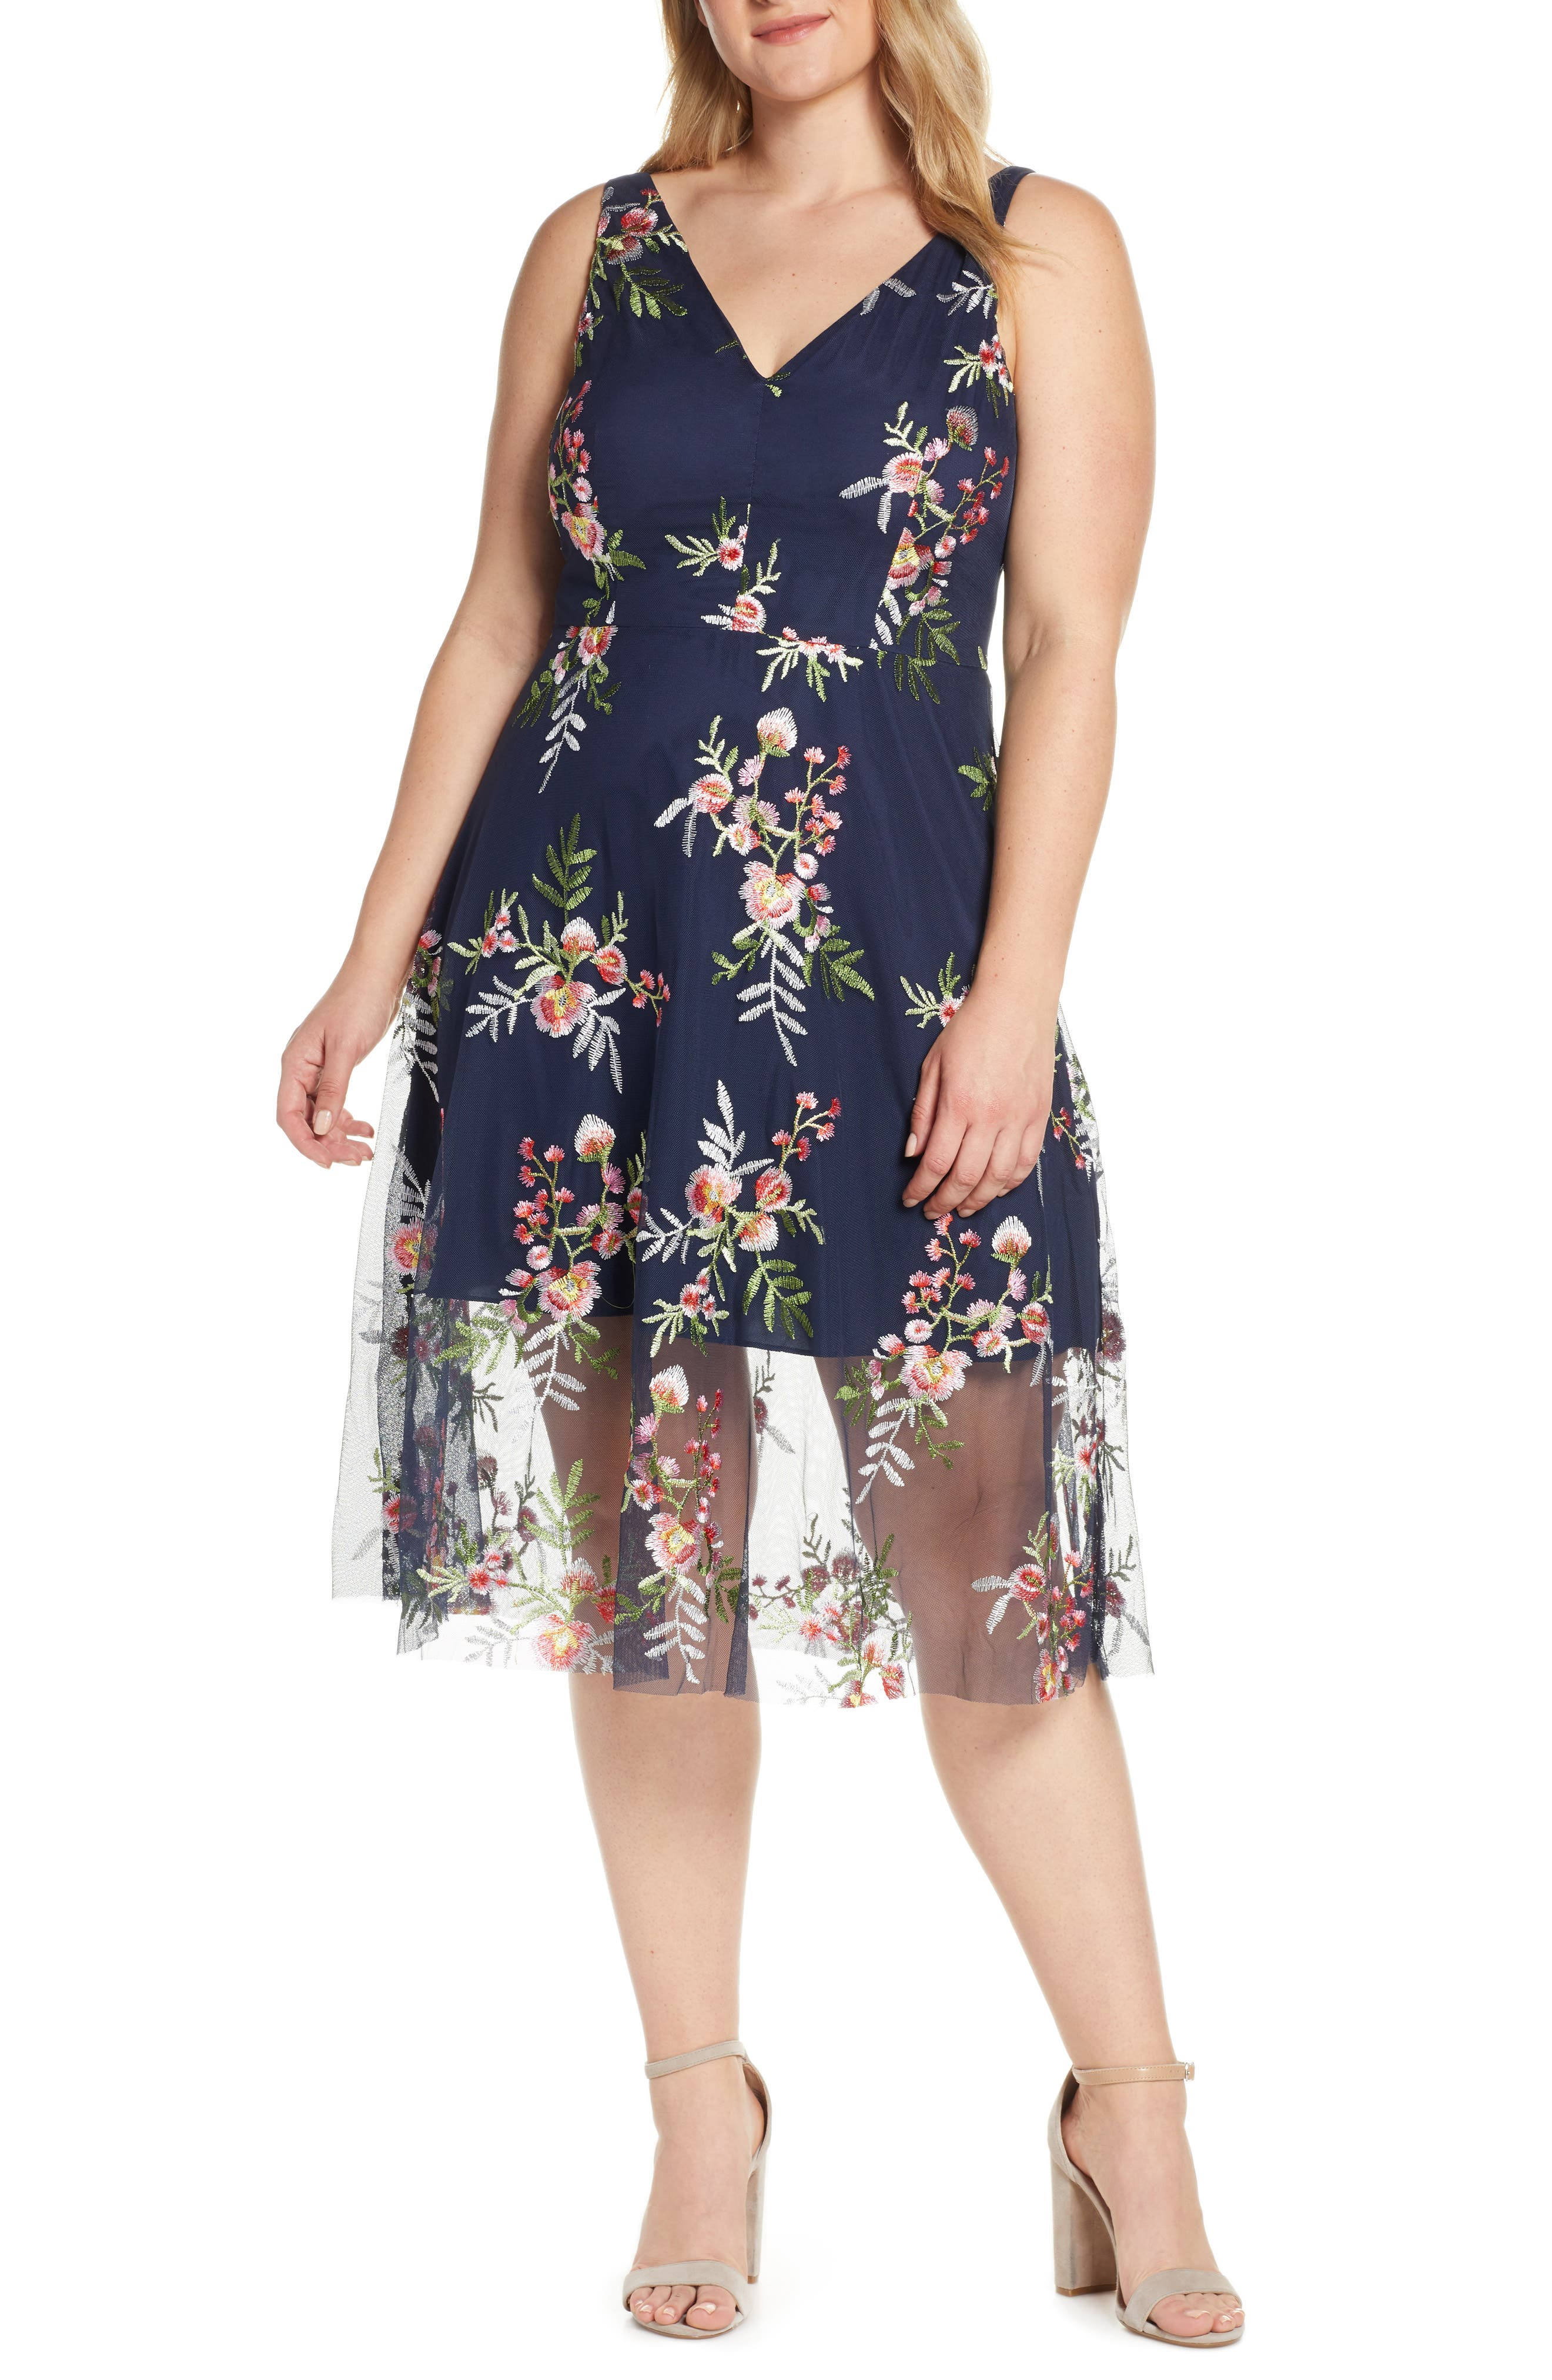 VINCE CAMUTO, Floral Embroidered Mesh Midi Dress, Alternate thumbnail 2, color, NAVY/ MULTI